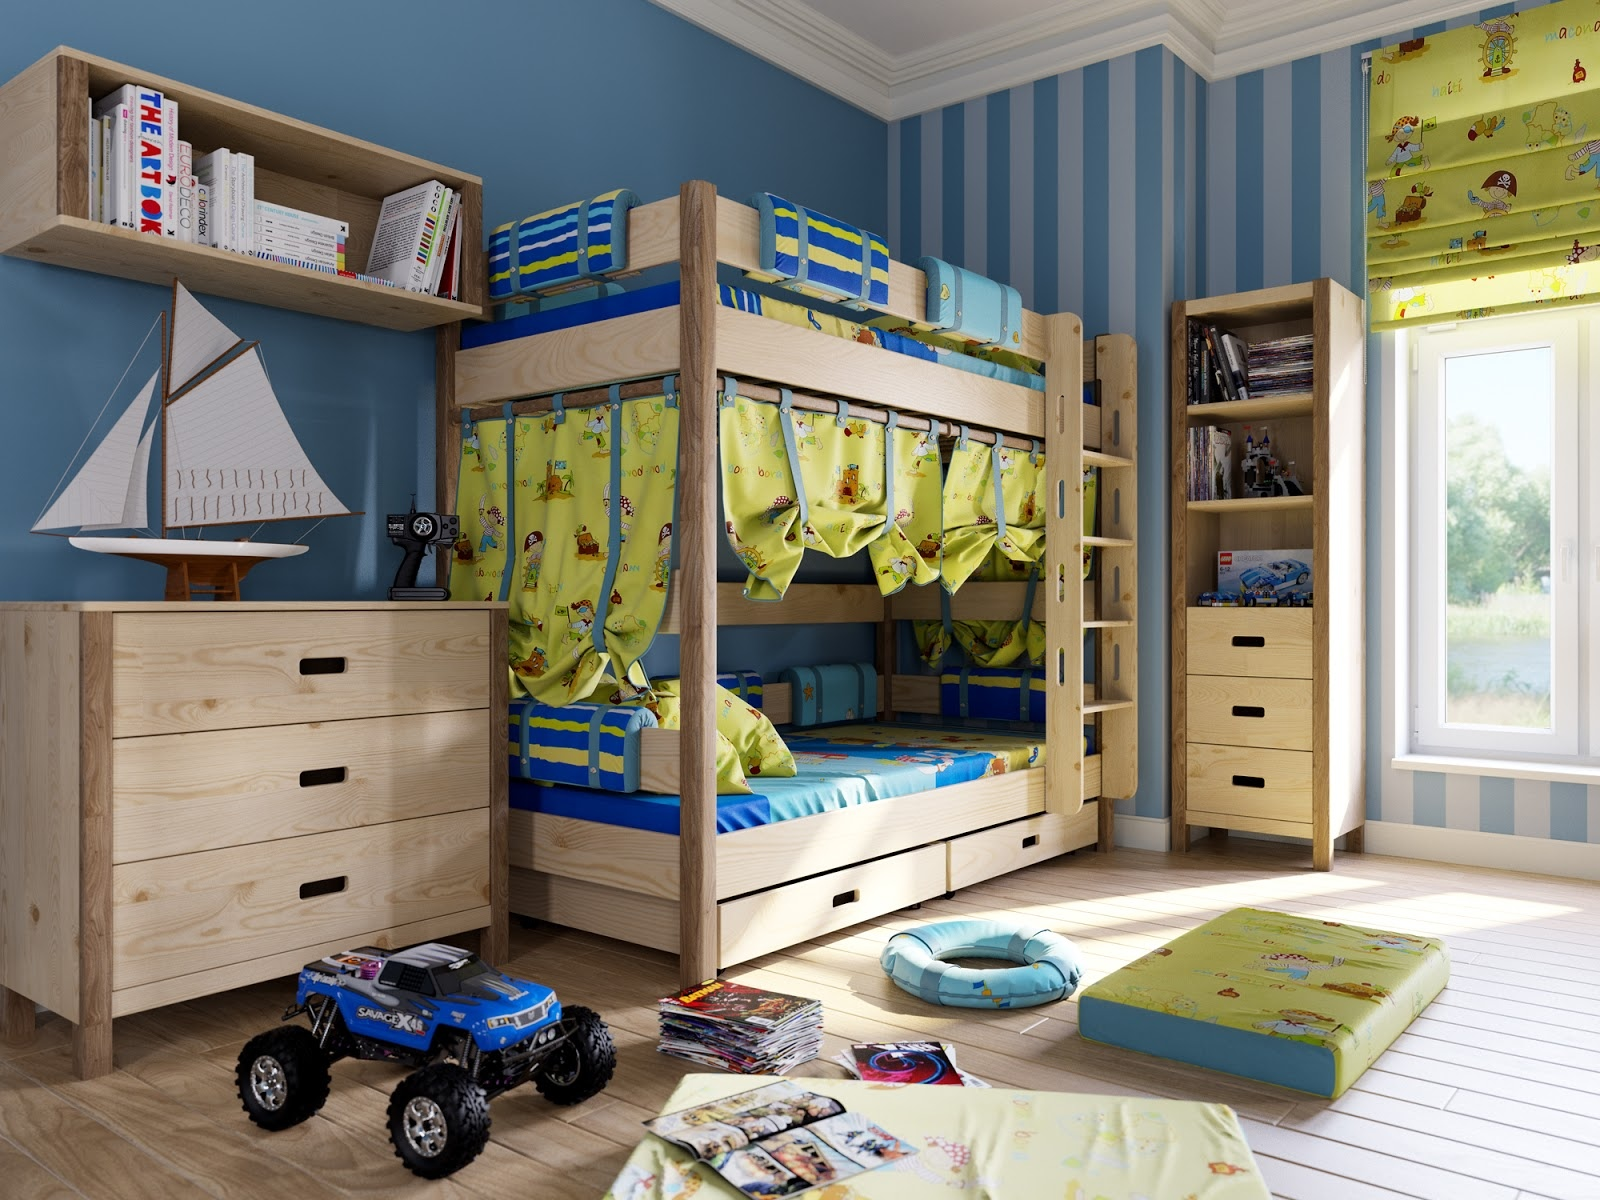 Childrens Room Decor Interior Design Ideas